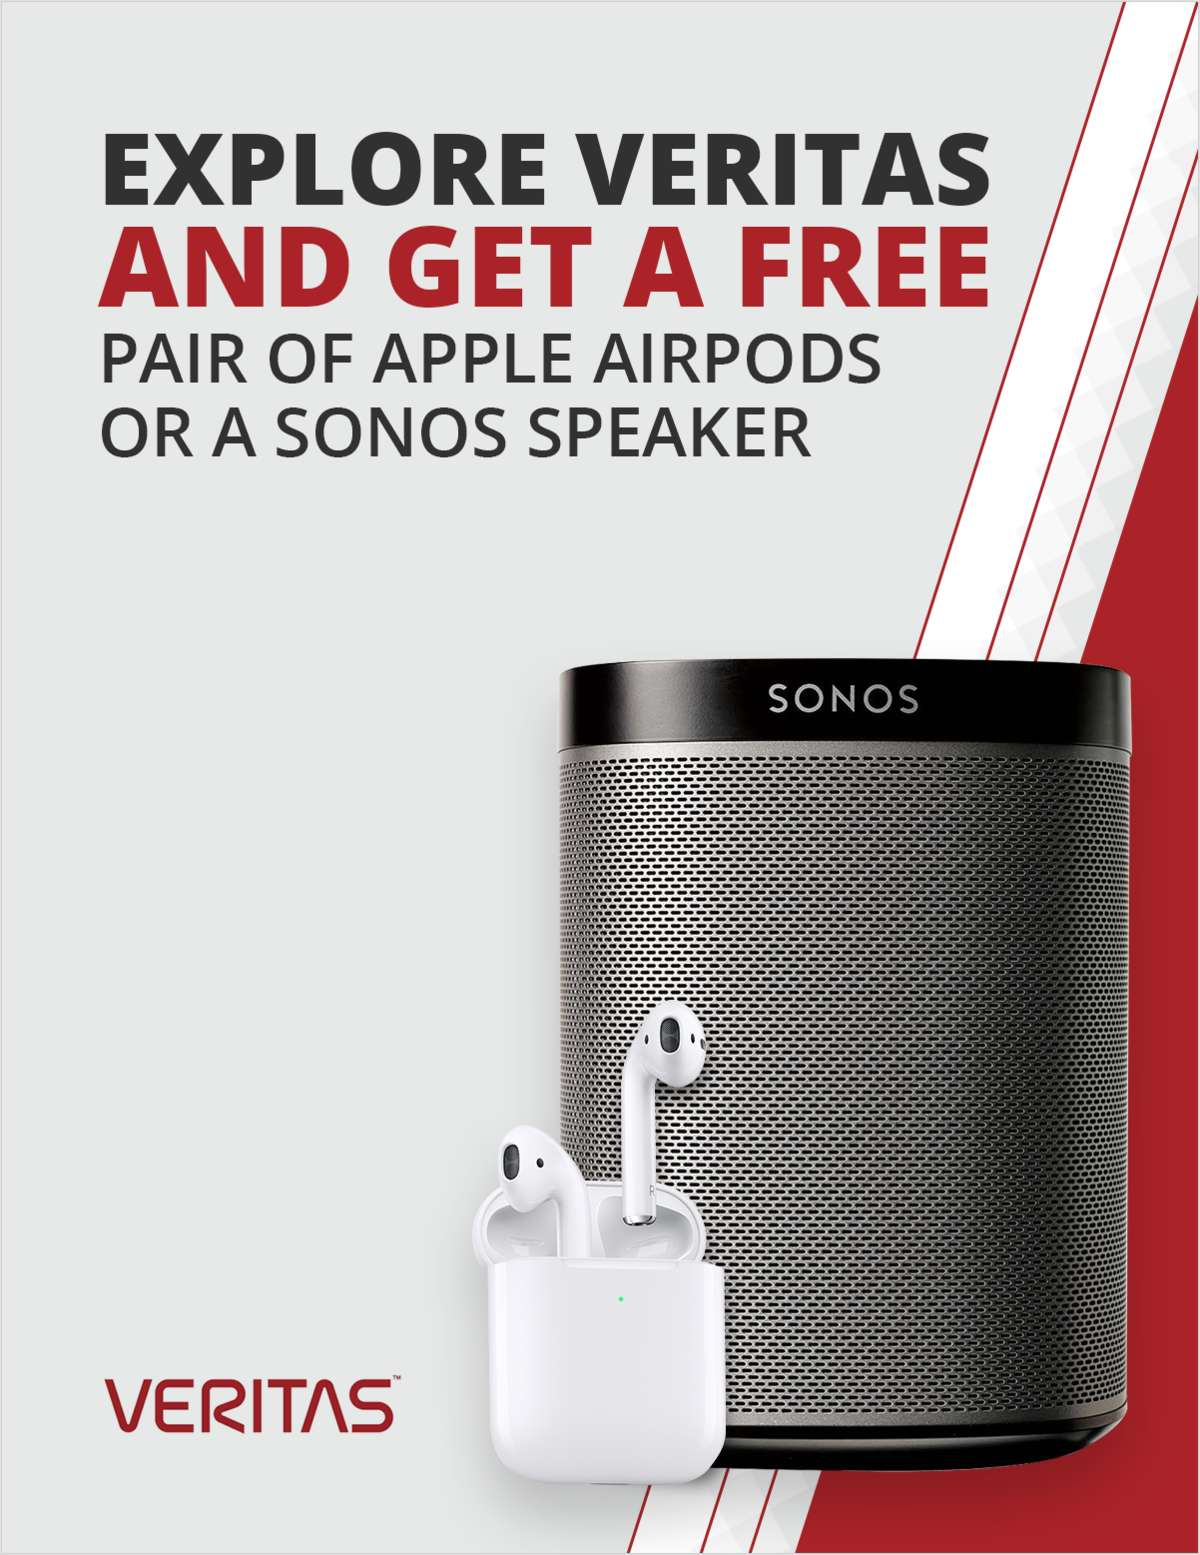 Explore Veritas and Get a Free Pair of Apple AirPods or a Sonos Speaker